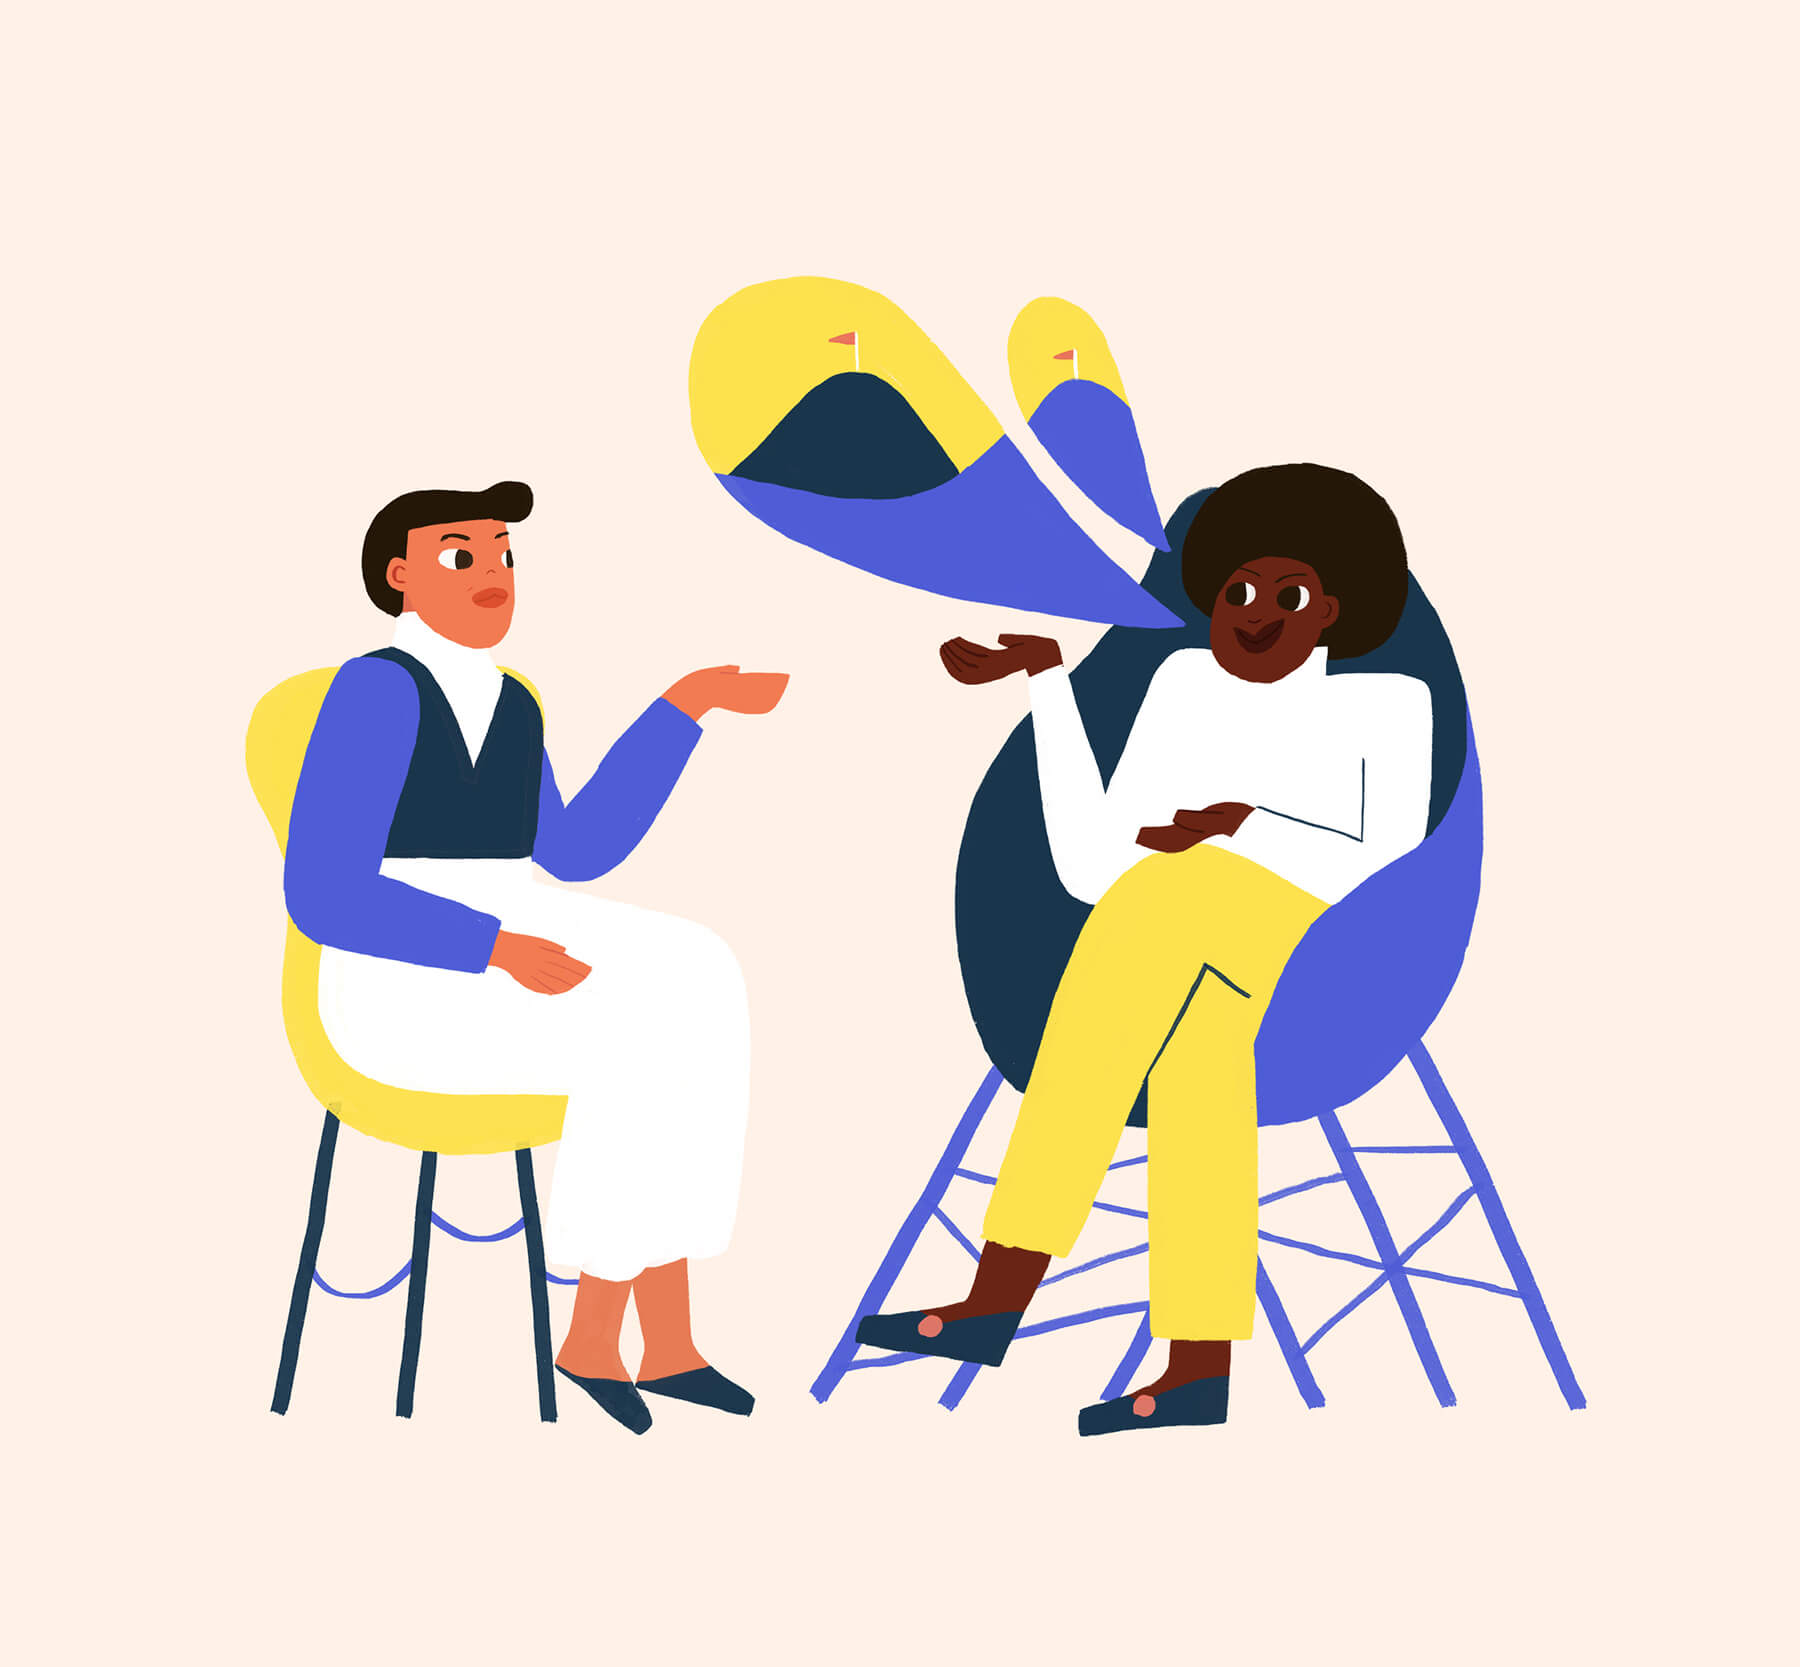 mentorship-women-goals-talking-mountain-illustration-violeta-noy-2